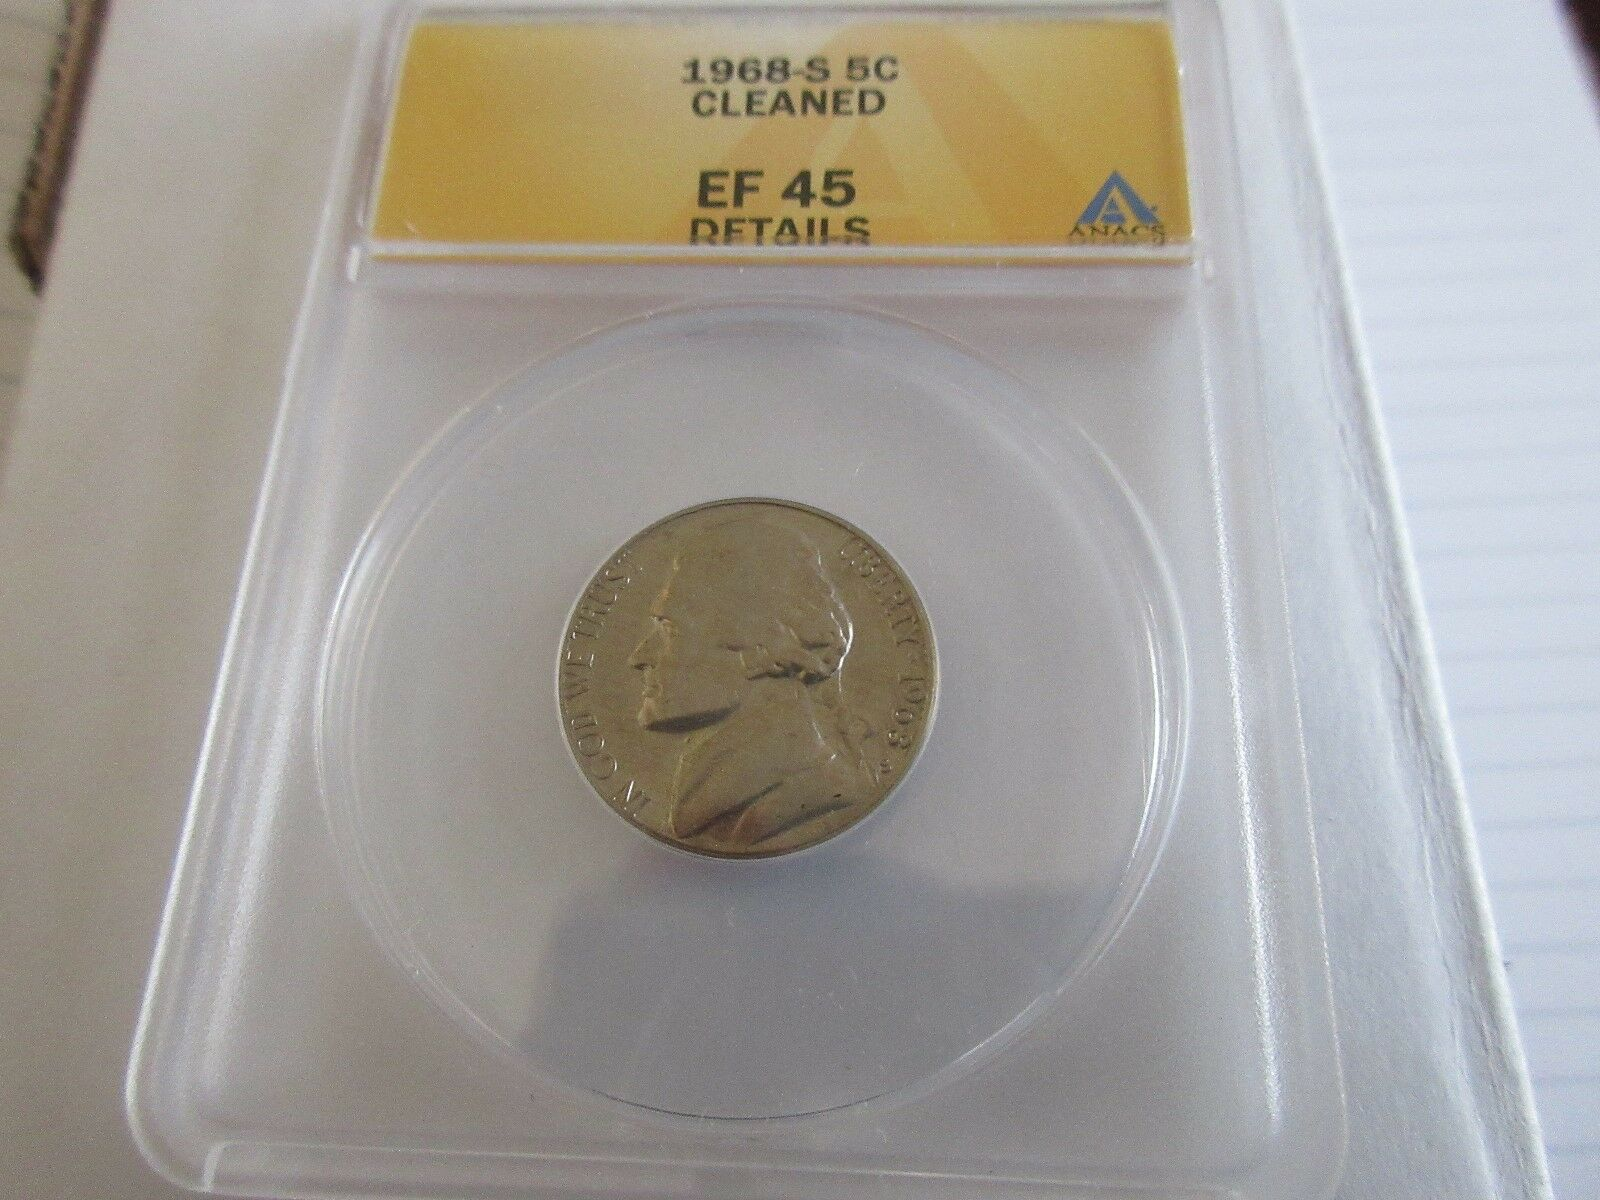 1968-S ,Cleaned , Jefferson Nickel , EF 45 , Anacs